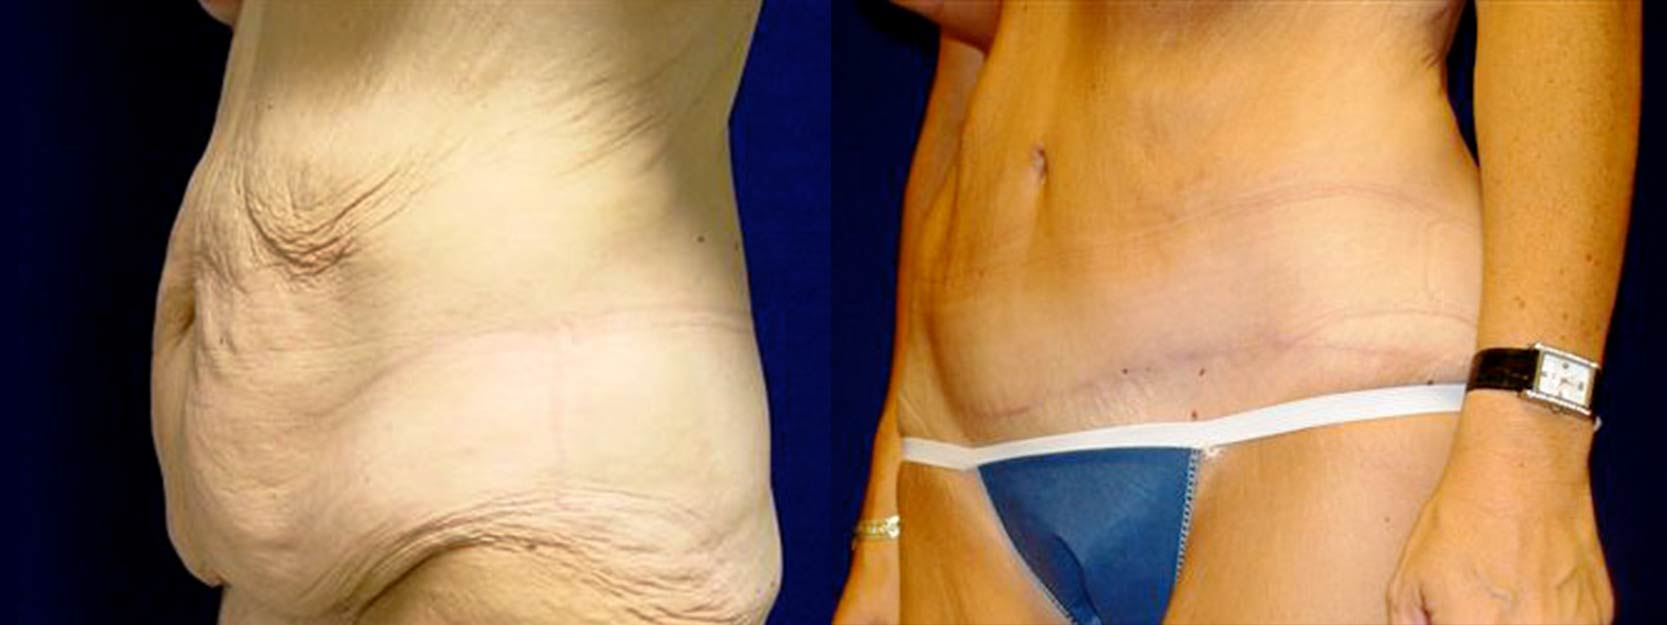 Left 3/4 View - Tummy Tuck After Massive Weight Loss